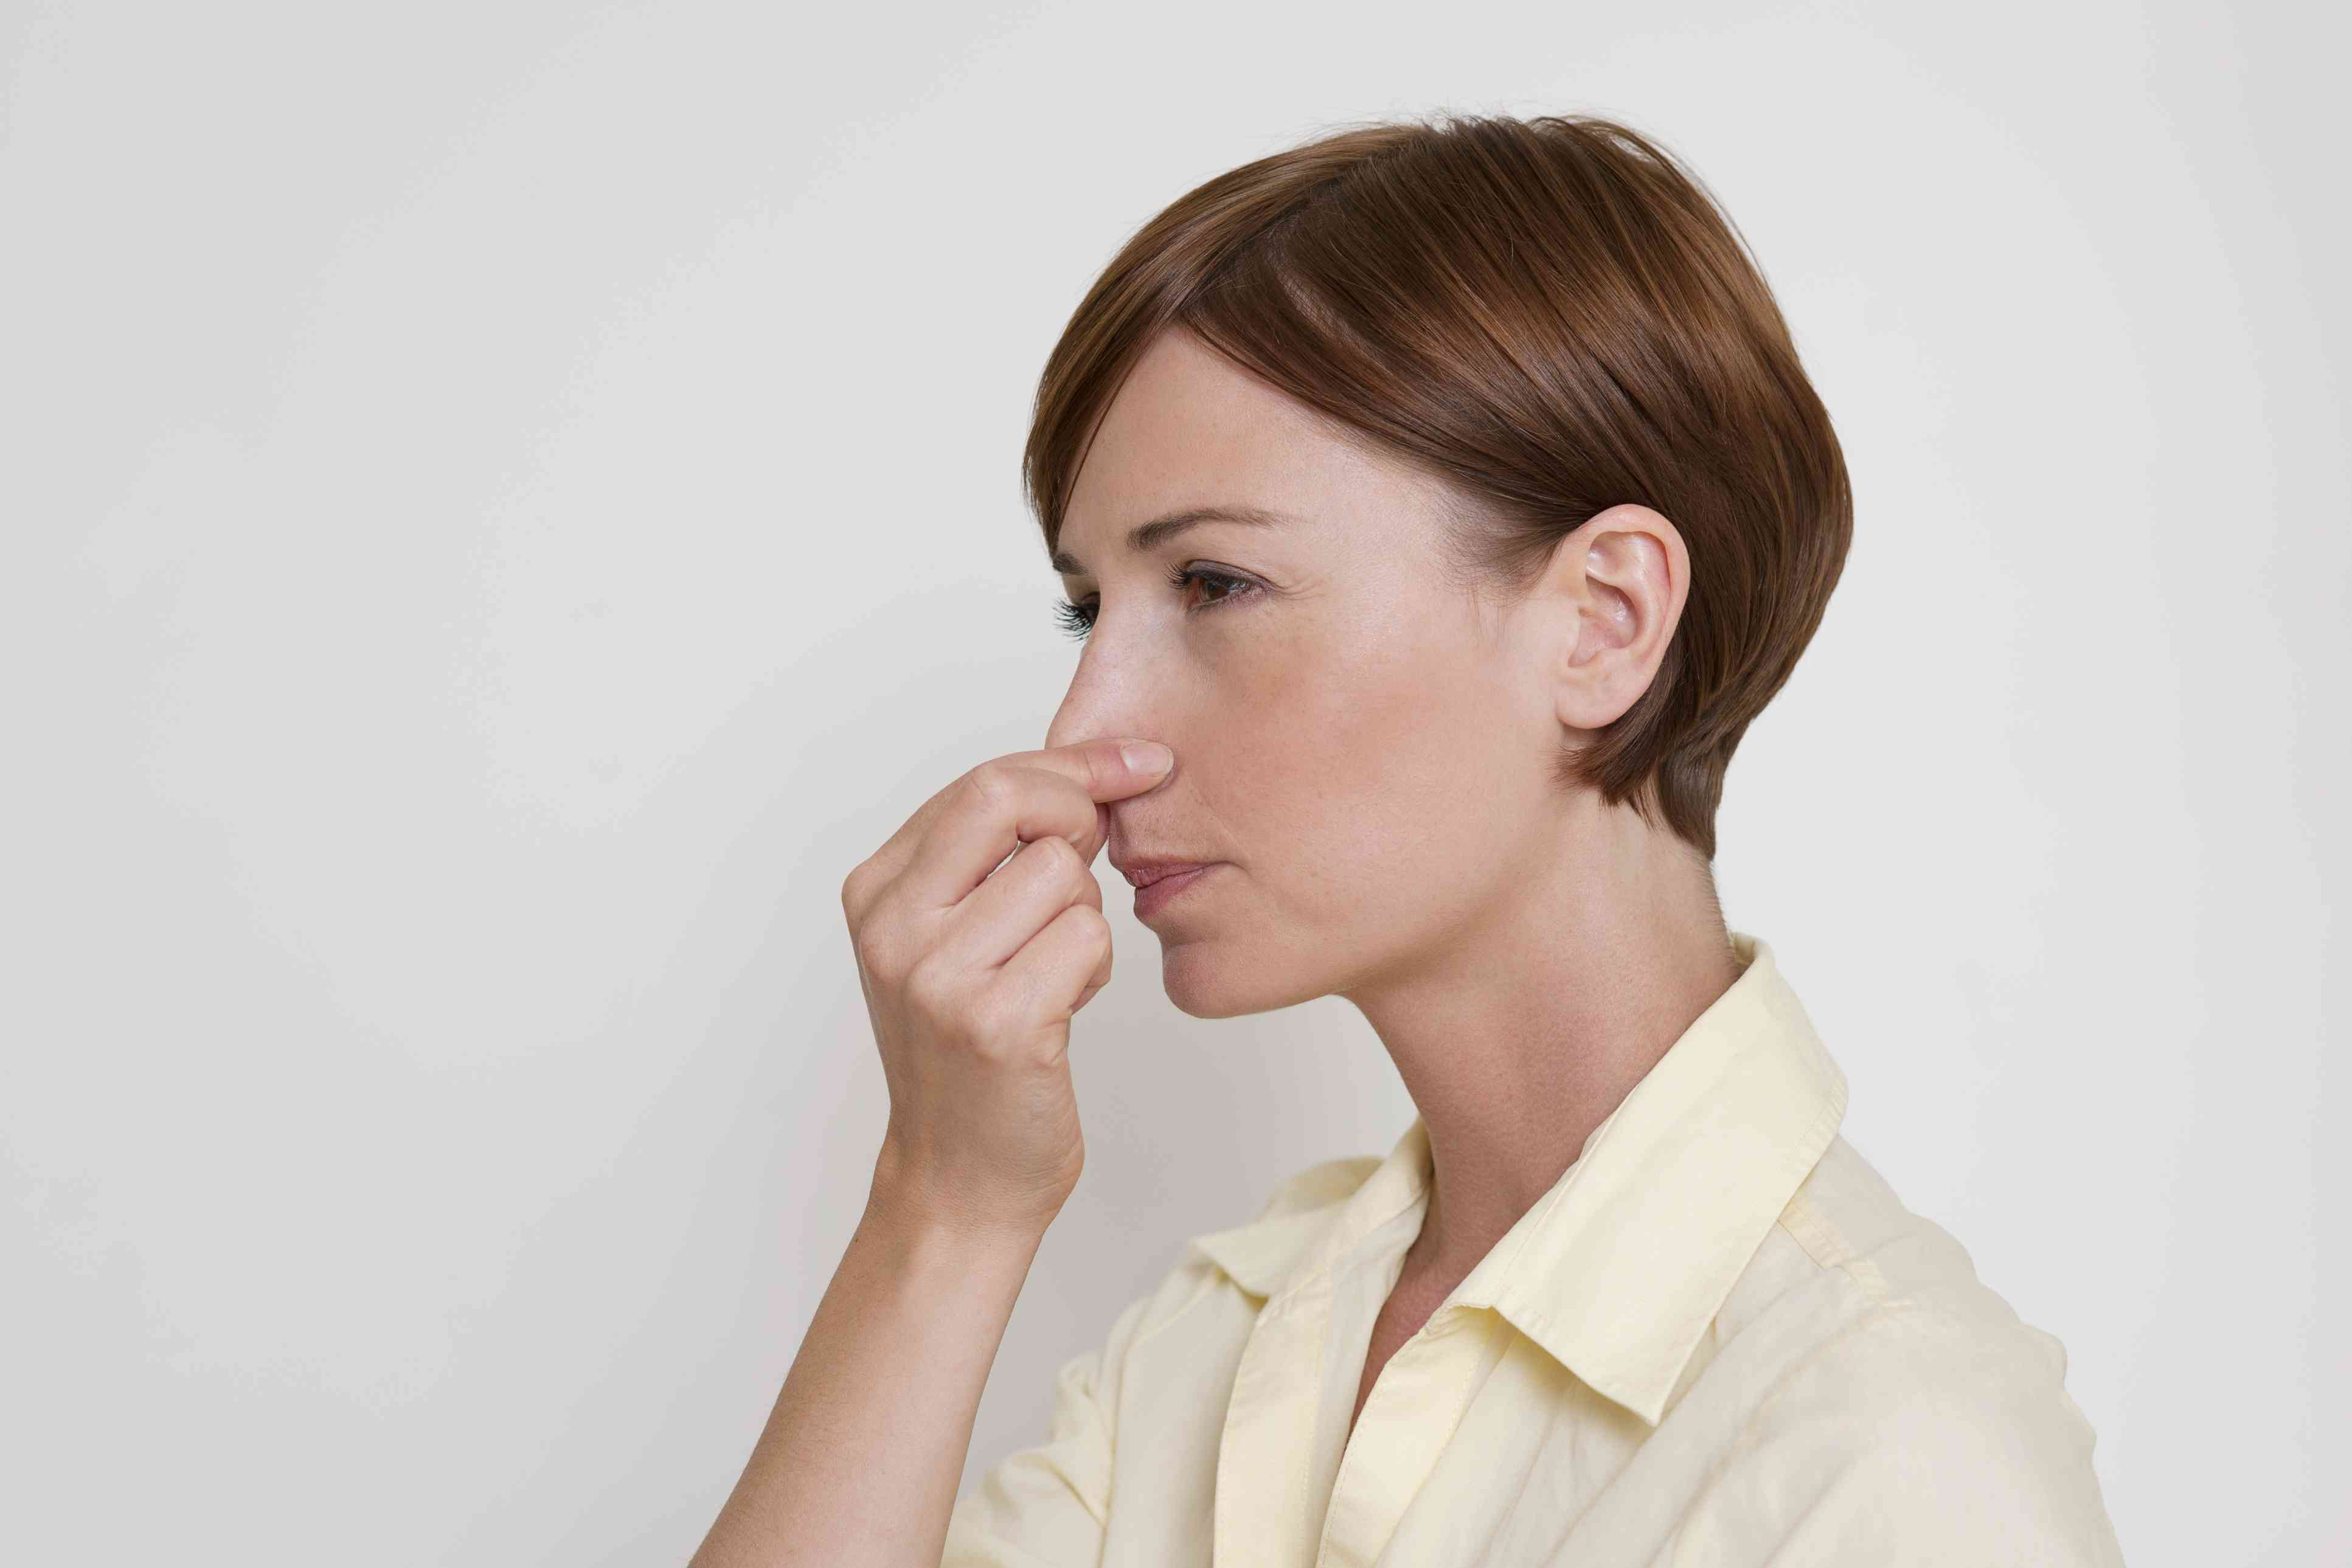 Woman using the Valsalva maneuver by pinching her nose closed